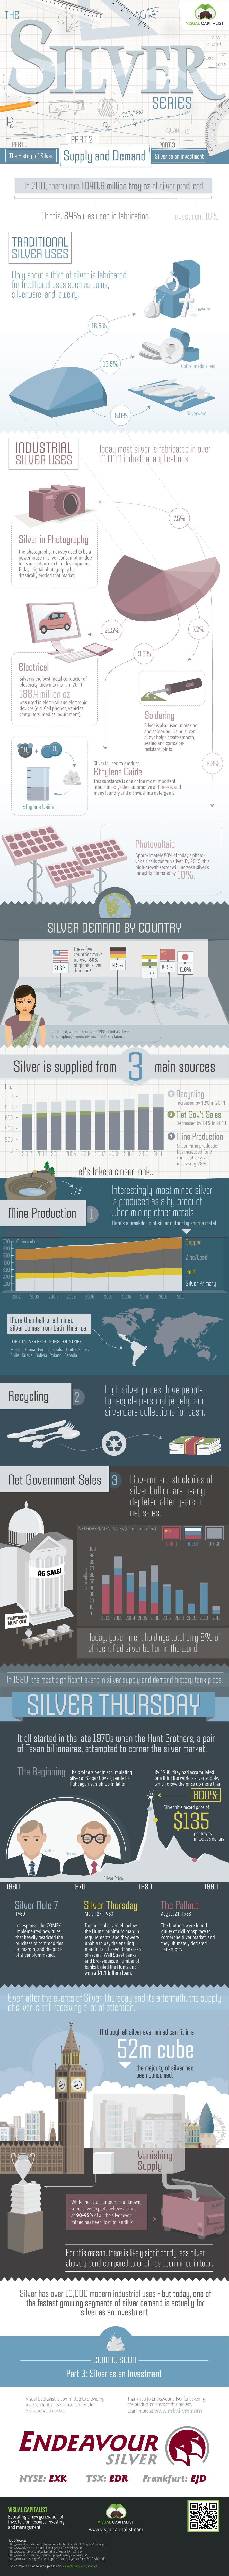 Silver infographic